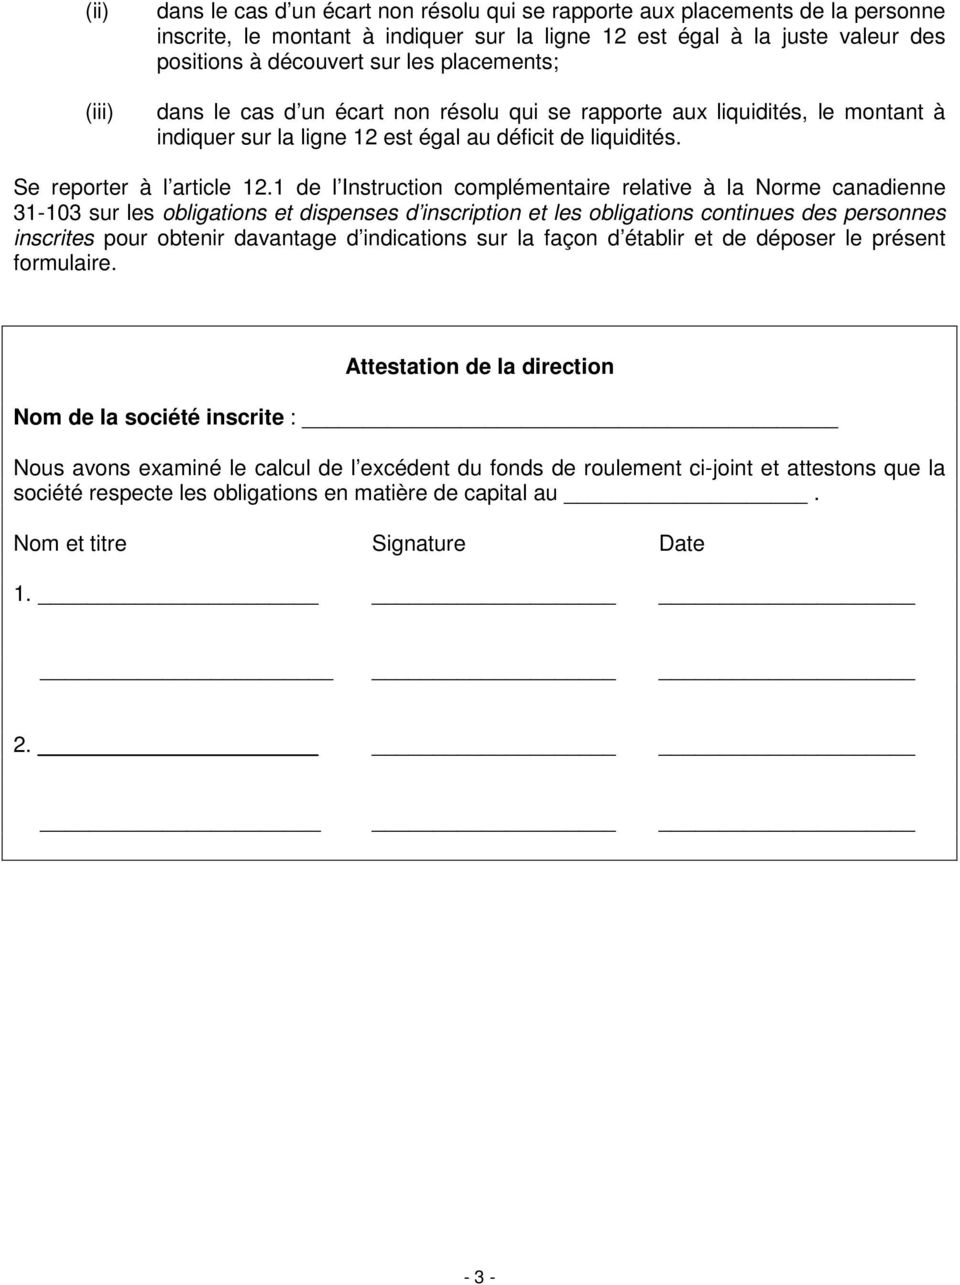 1 de l Instruction complémentaire relative à la Norme canadienne 31-103 sur les obligations et dispenses d inscription et les obligations continues des personnes inscrites pour obtenir davantage d